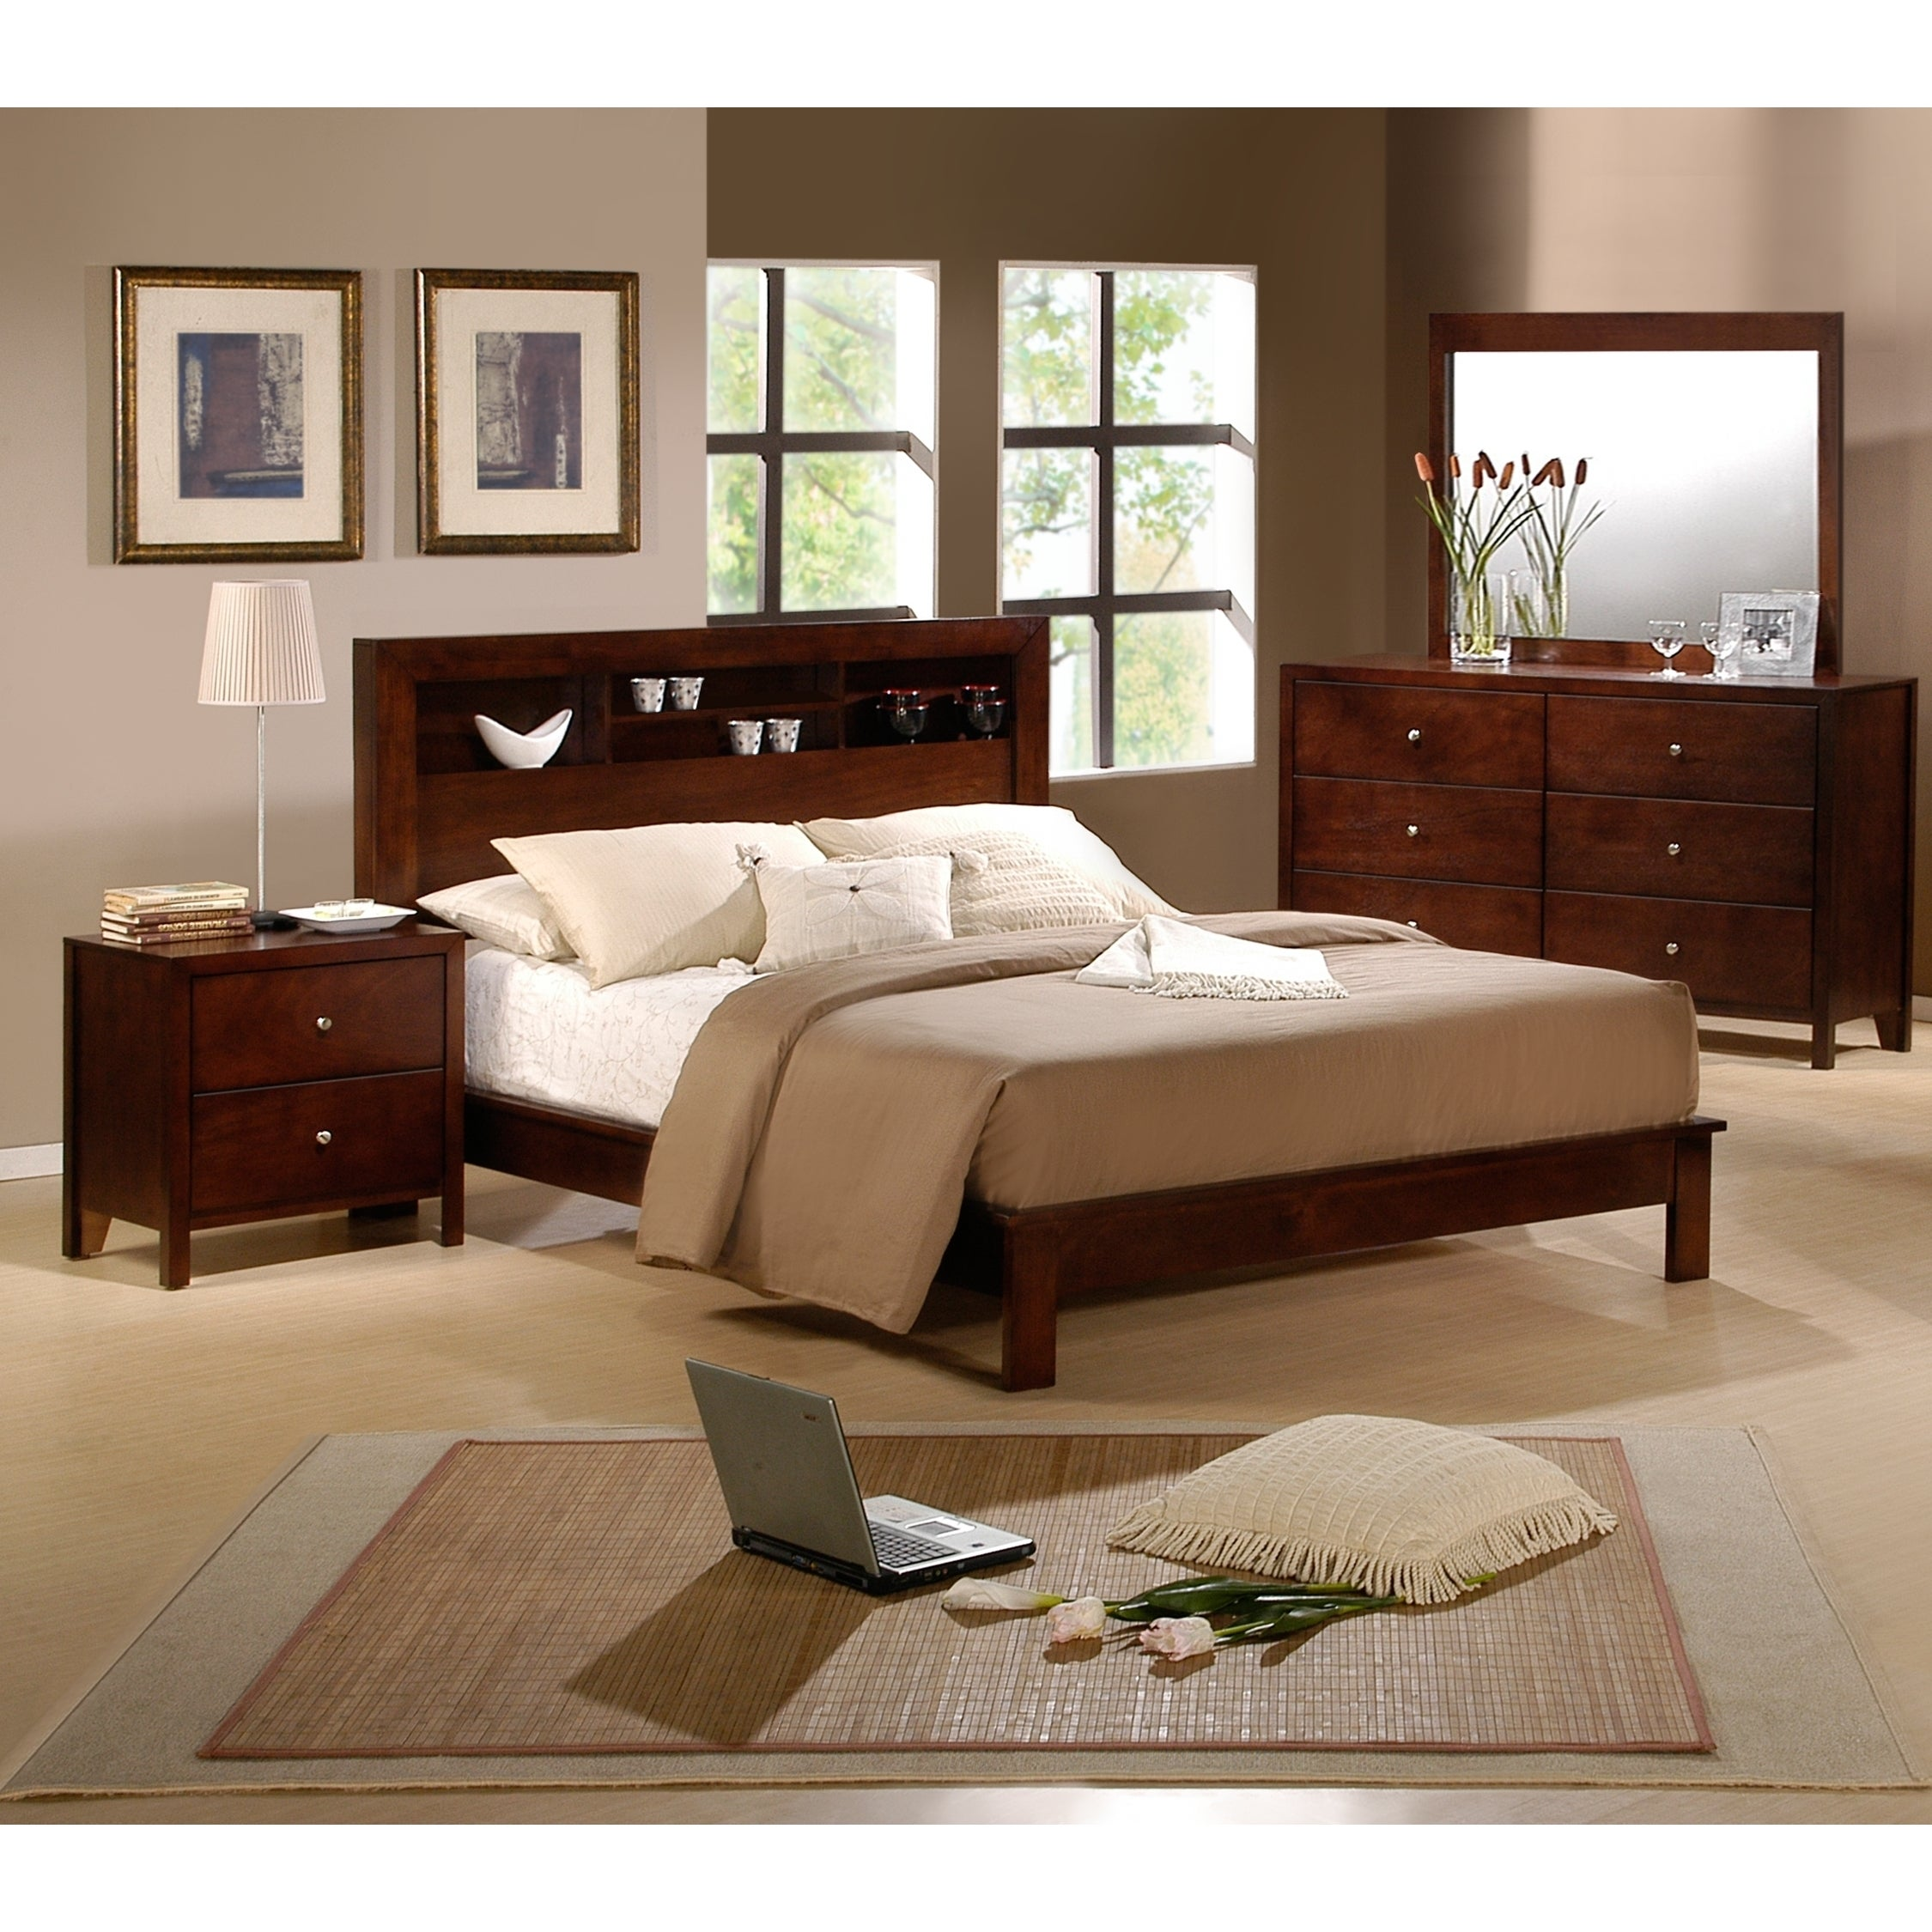 Shop picket house sonata 5 piece queen size bedroom set - Queen size bedroom furniture sets ...